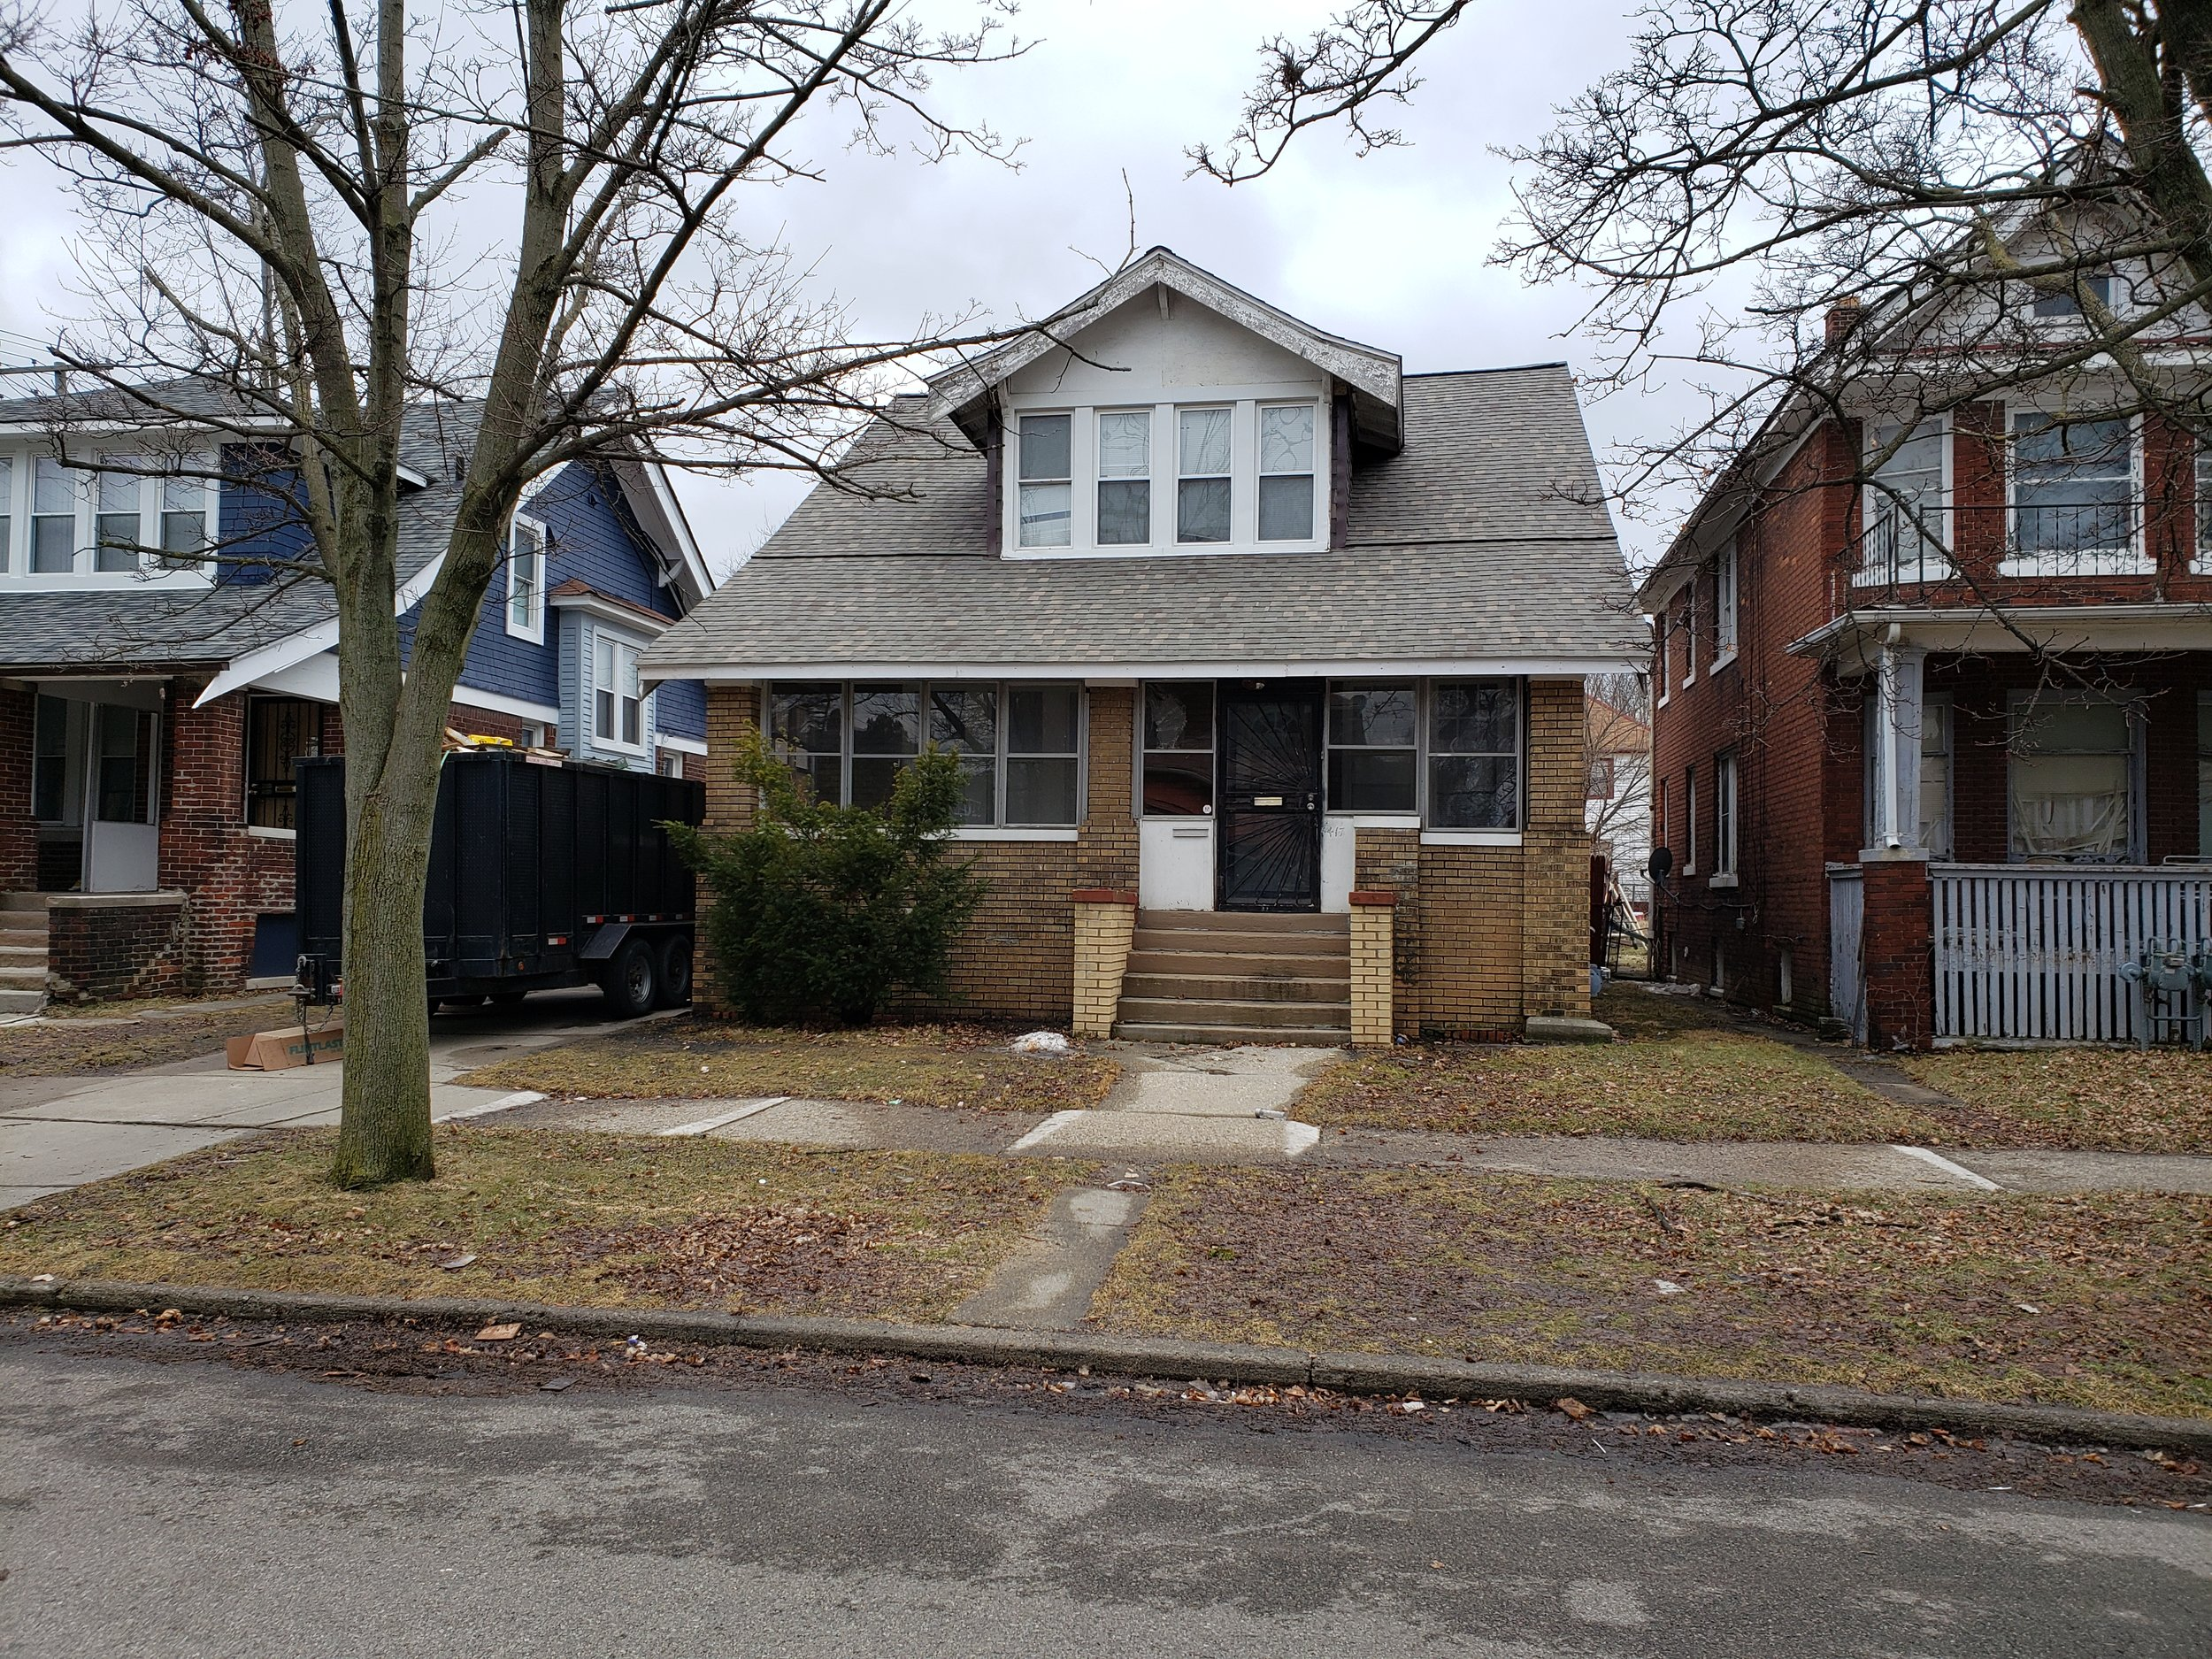 Bobbie's future home - Praise God for this enormous opportunity and for the family who has patiently spent years negotiating with the previous owner of the vacant home and graciously financed the renovations thus far! When MACC Development heard of their commitment we knew this was also a great opportunity to support Bobbie and we invite you to join us! The home is on a beautiful block in the Pingree Park neighborhood on a street where many of our MACC members already reside and raise their family.Work has already begun on the house, fixing burst pipes and getting the boiler up and running again. MACC Development is sending mission team volunteers over to the home for cleaning up trash, removing any remaining furniture, and scraping loose plaster/paint off the walls so they can be skim coated and repainted and we plan to send at least a 100 more over the course of the summer. While this drastically reduces the major labor cost in the renovation we also need financial donations to purchase materials.